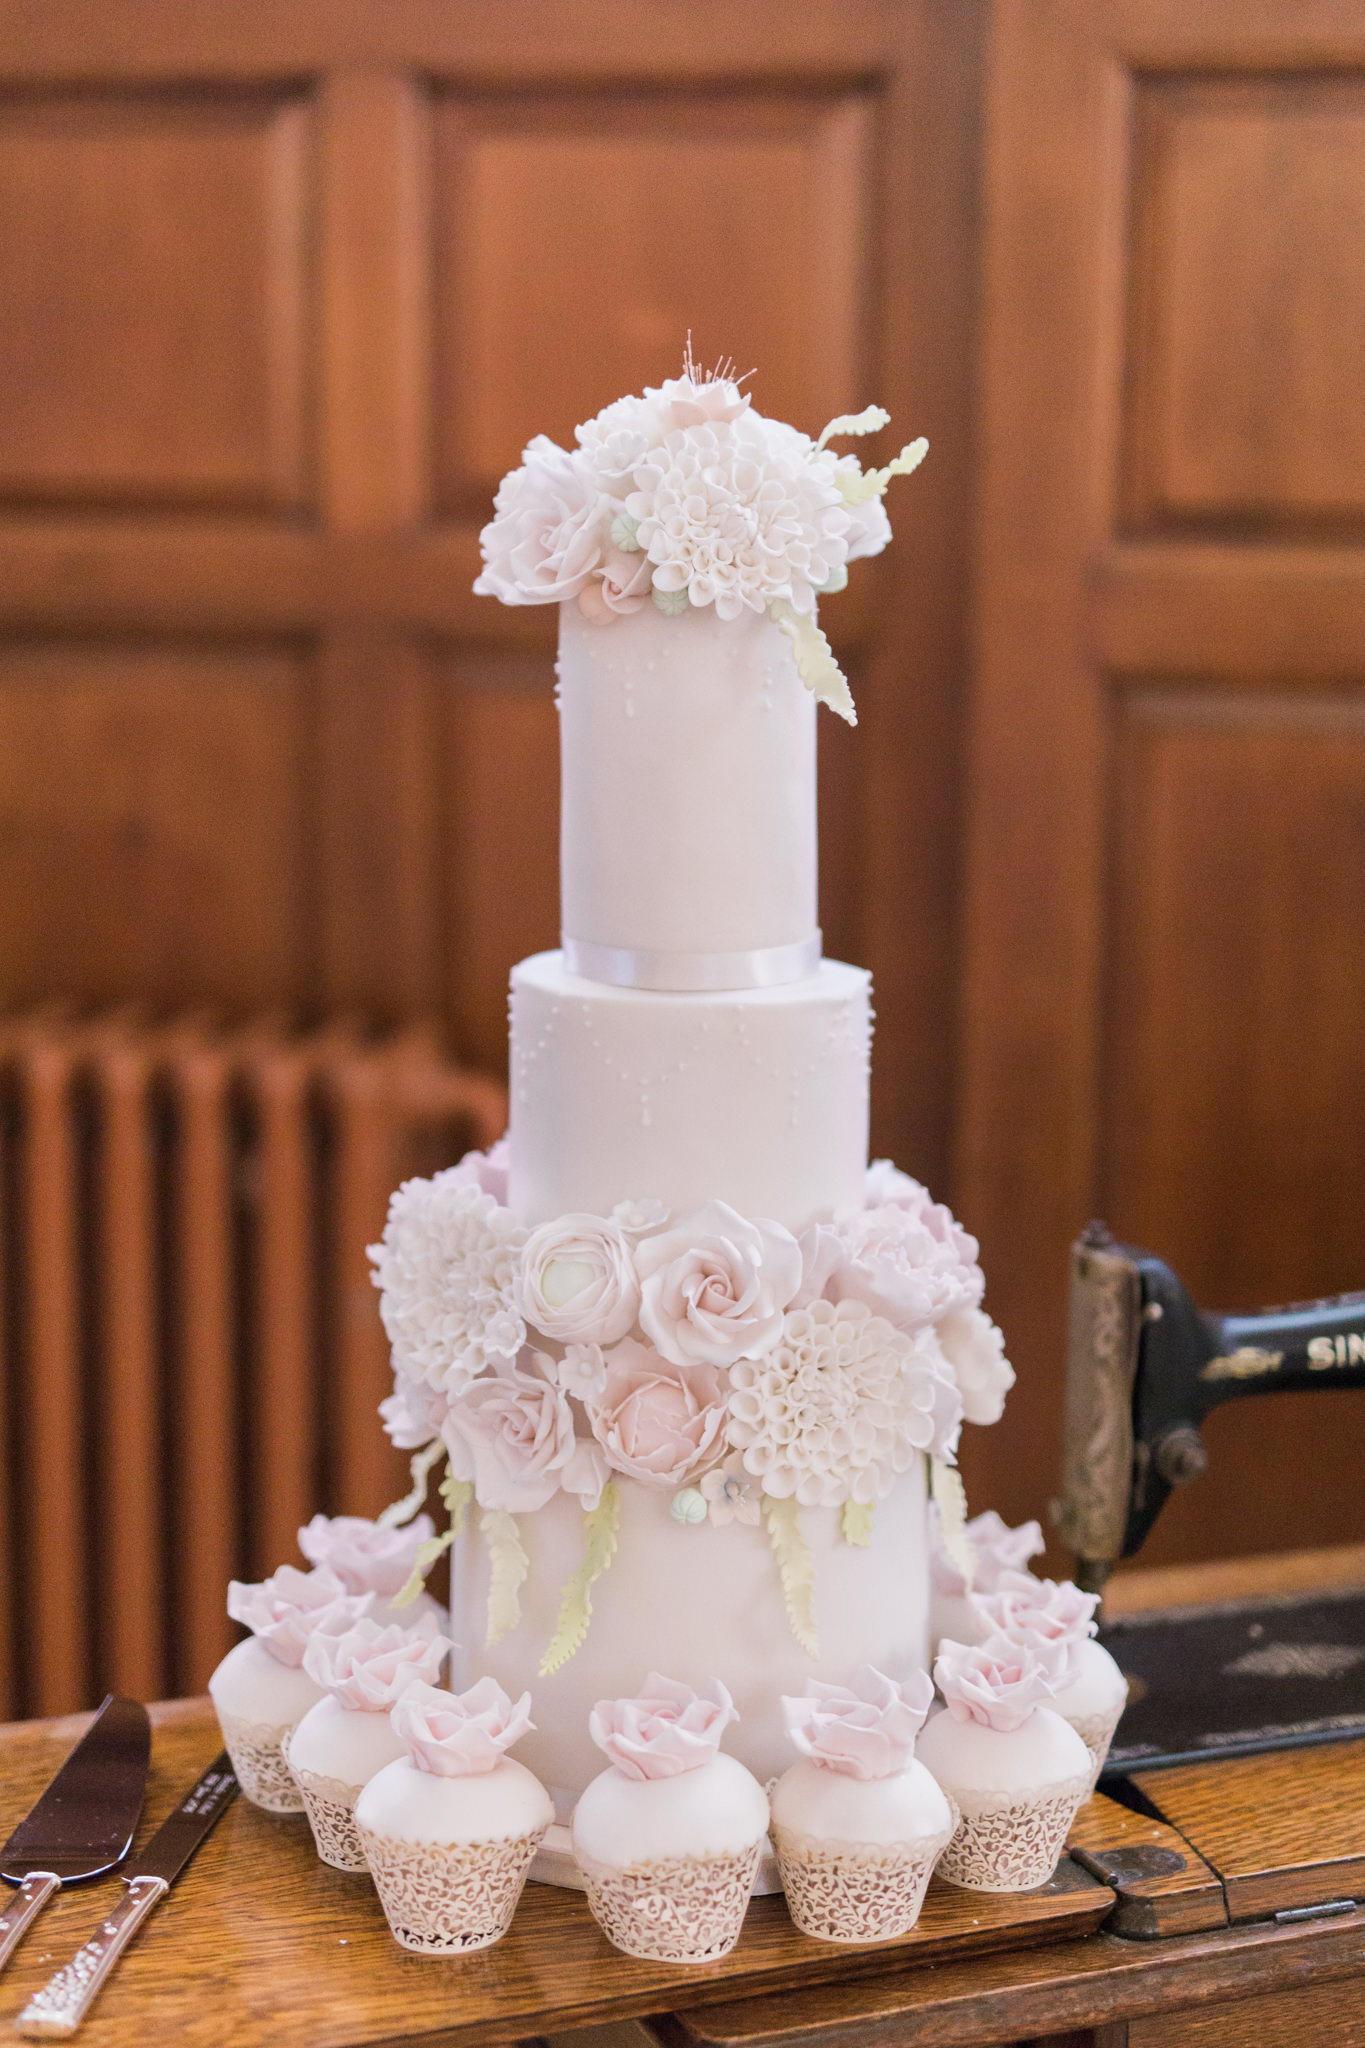 Baby pink wedding cake and cupcakes